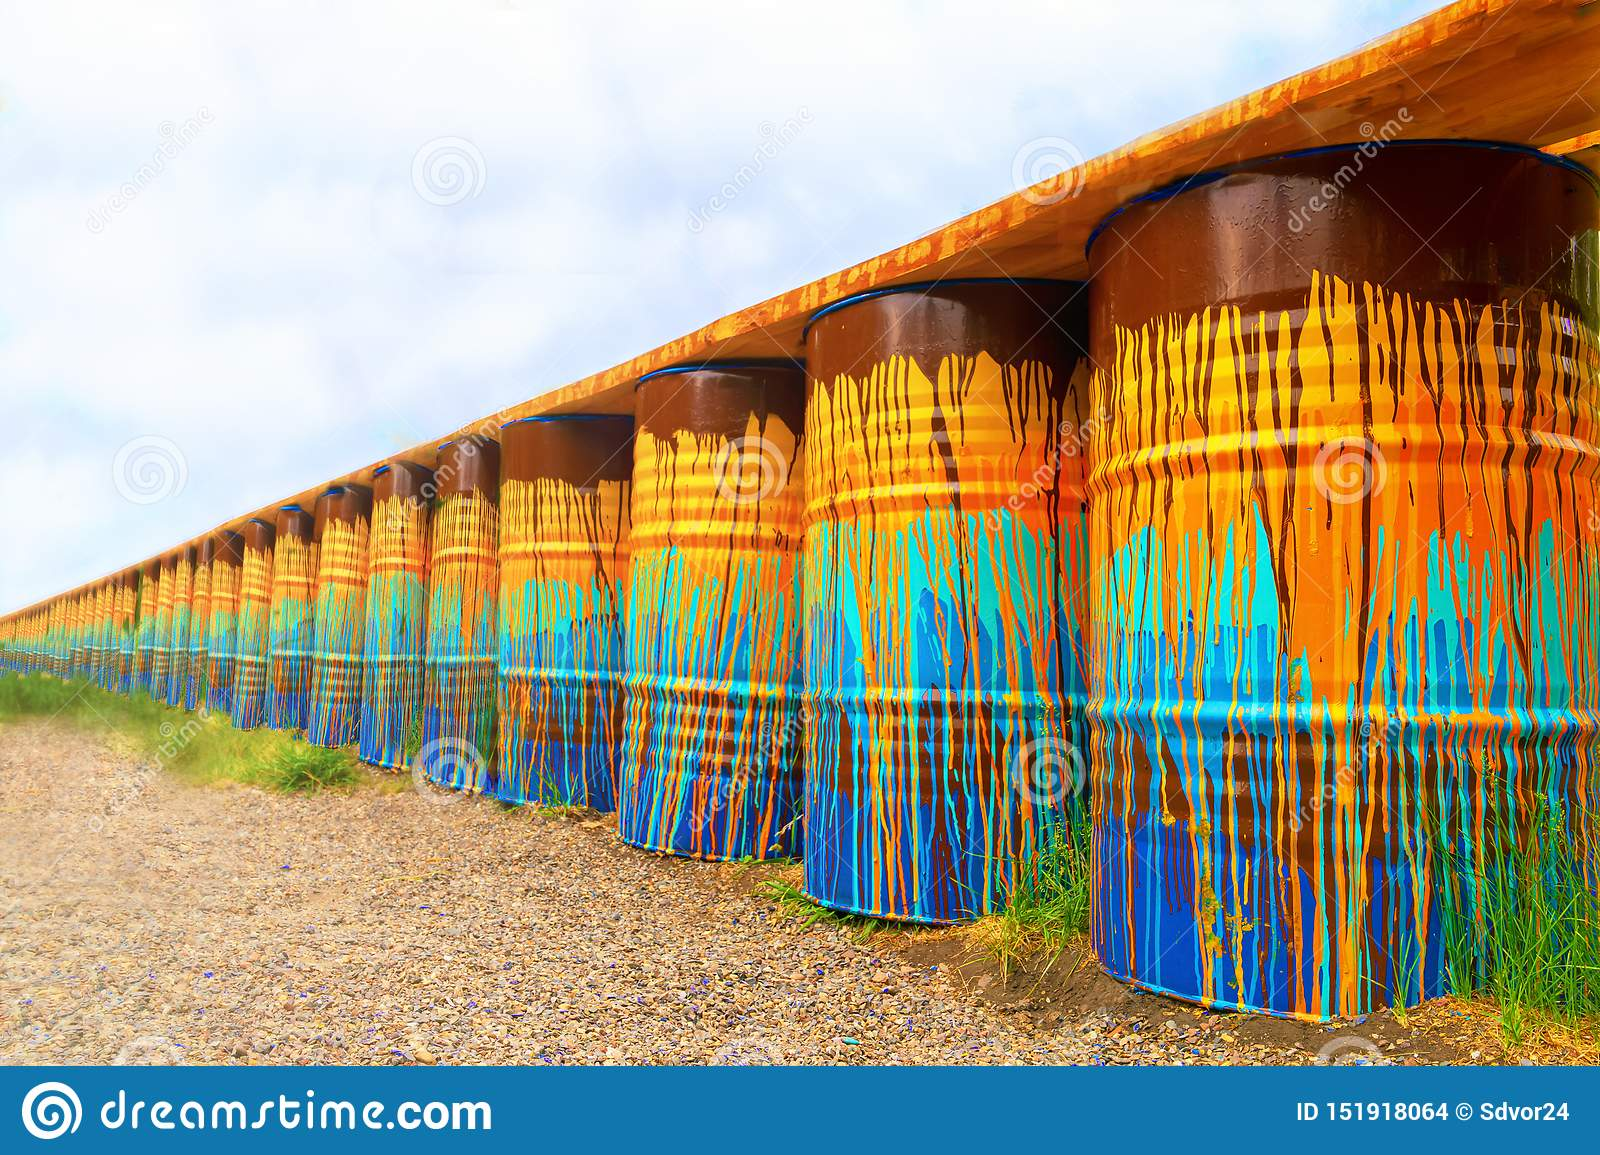 Image of multi-colored, rusty and old oil barrels in piles with a blue sky and sunny day. barrels perspective, like a